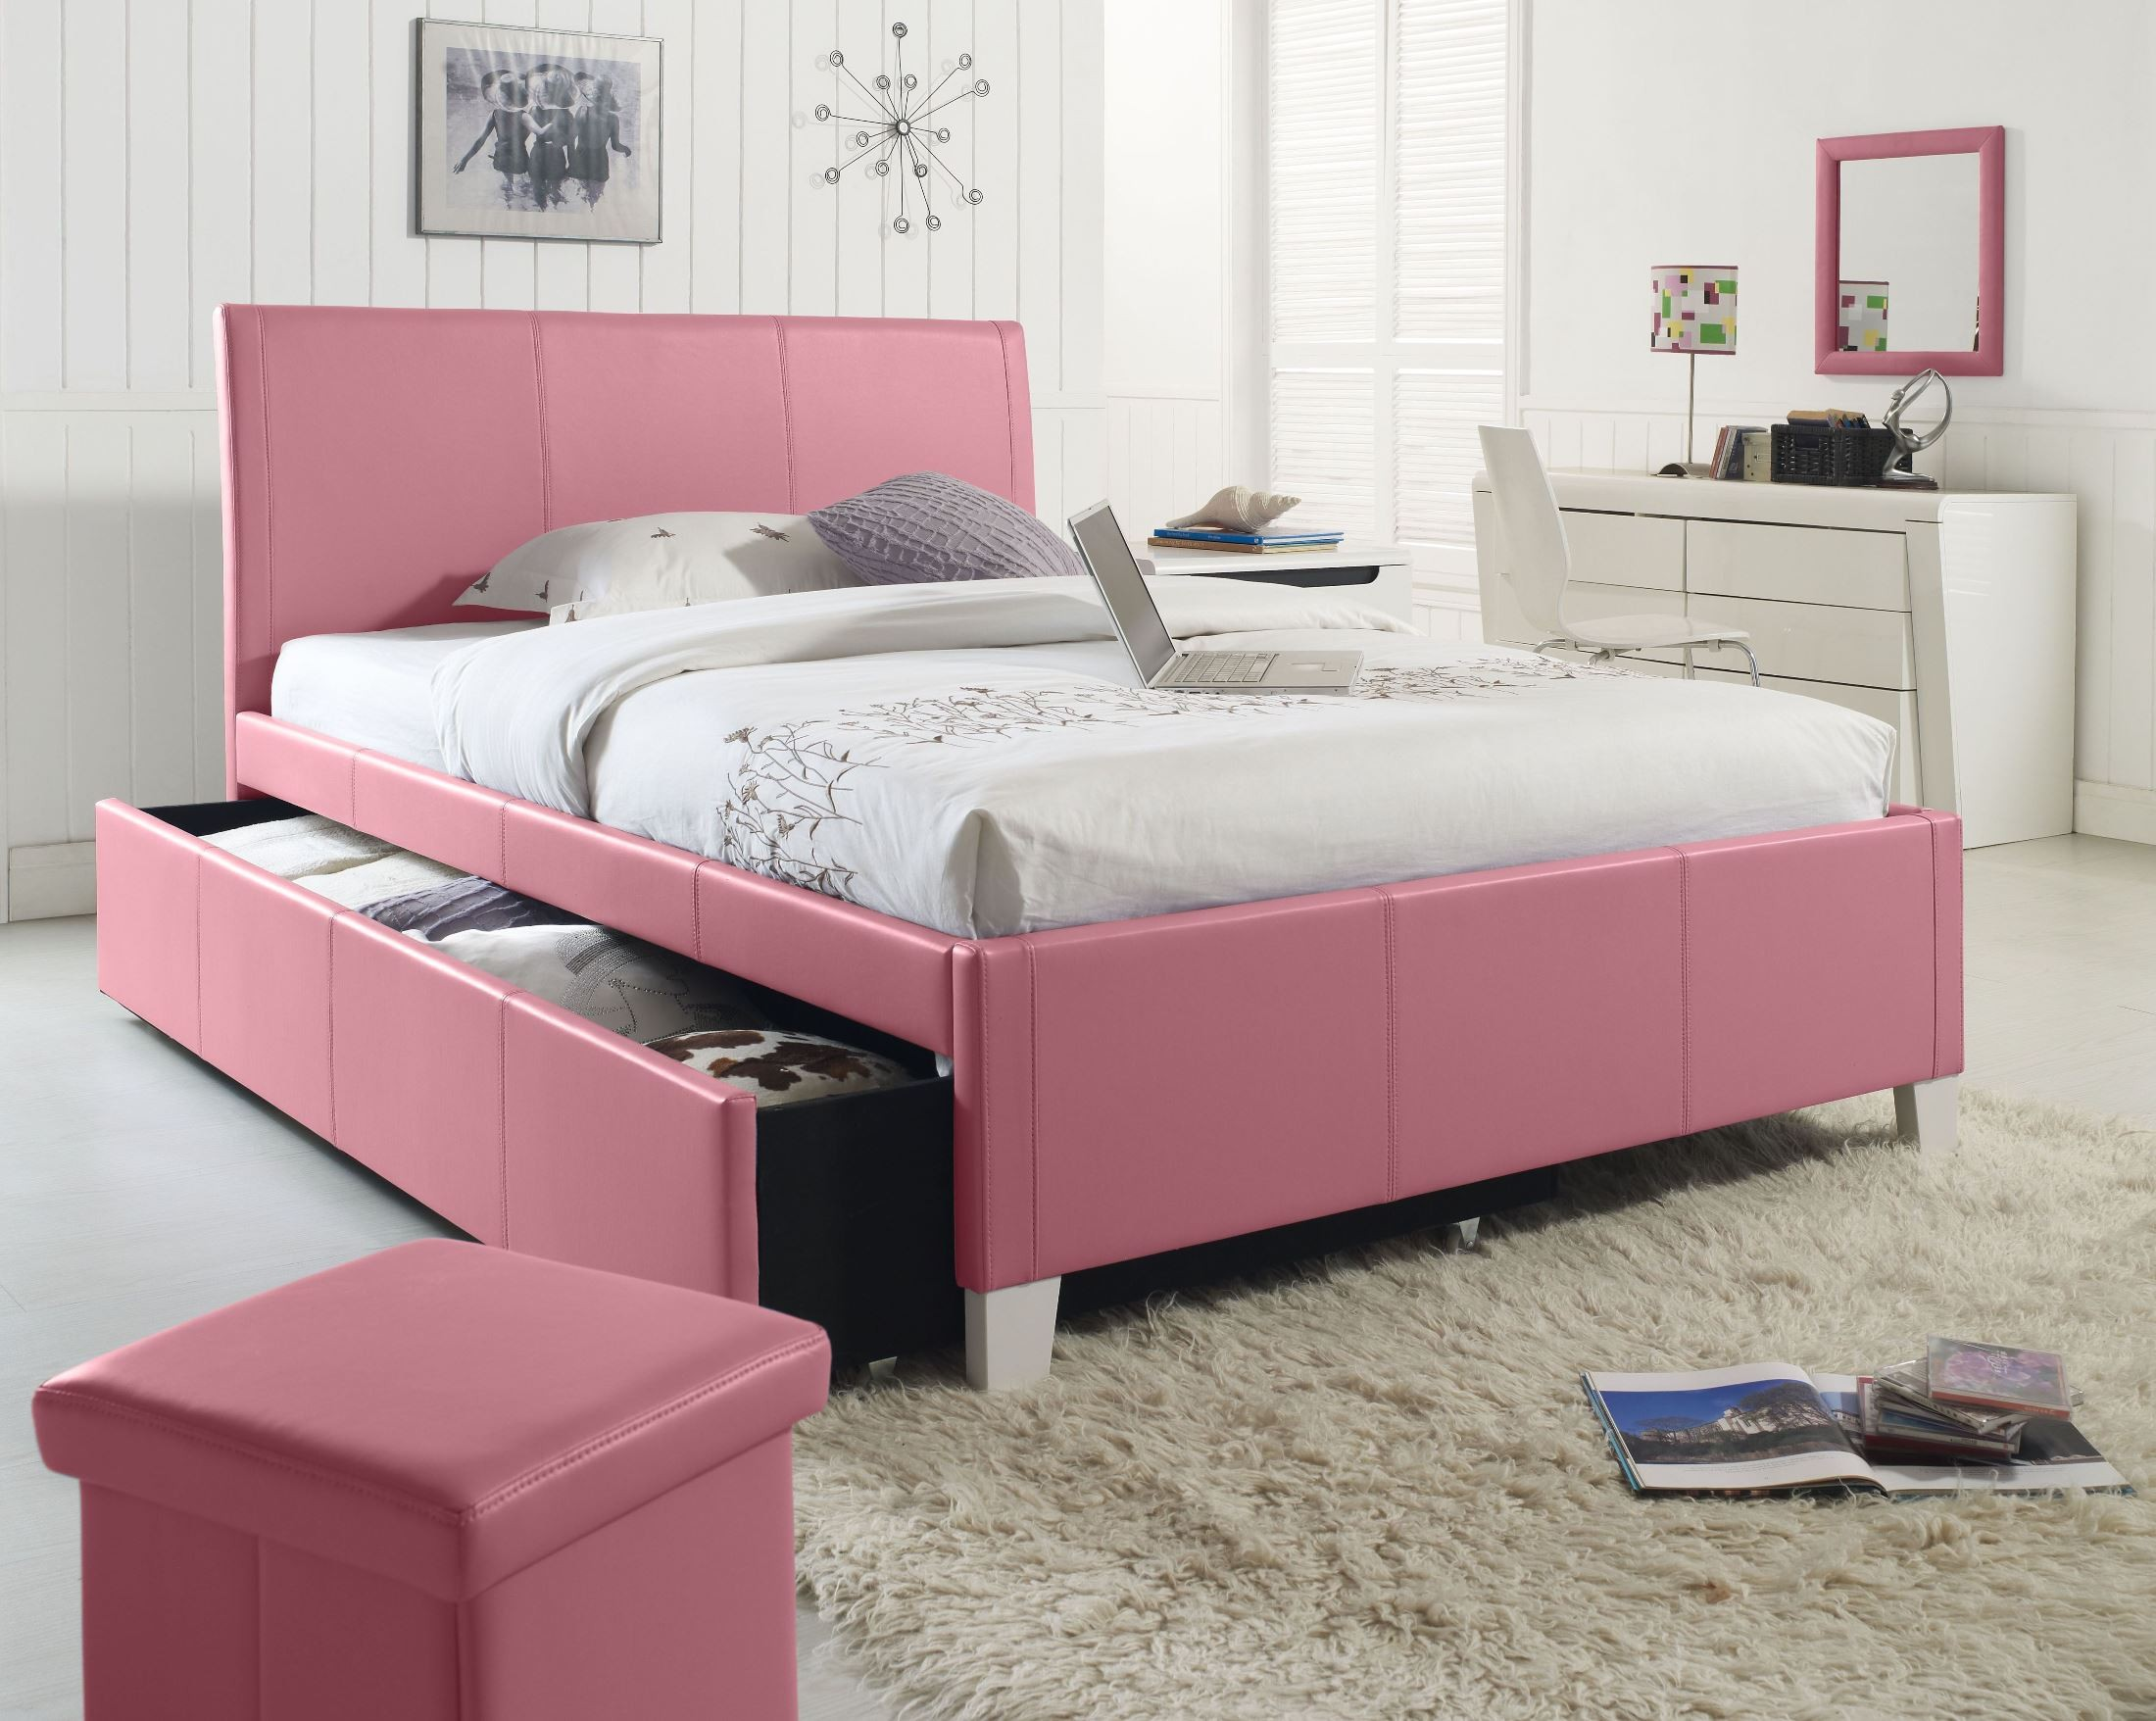 fantasia pink twin upholstered trundle bed from standard furniture coleman furniture. Black Bedroom Furniture Sets. Home Design Ideas